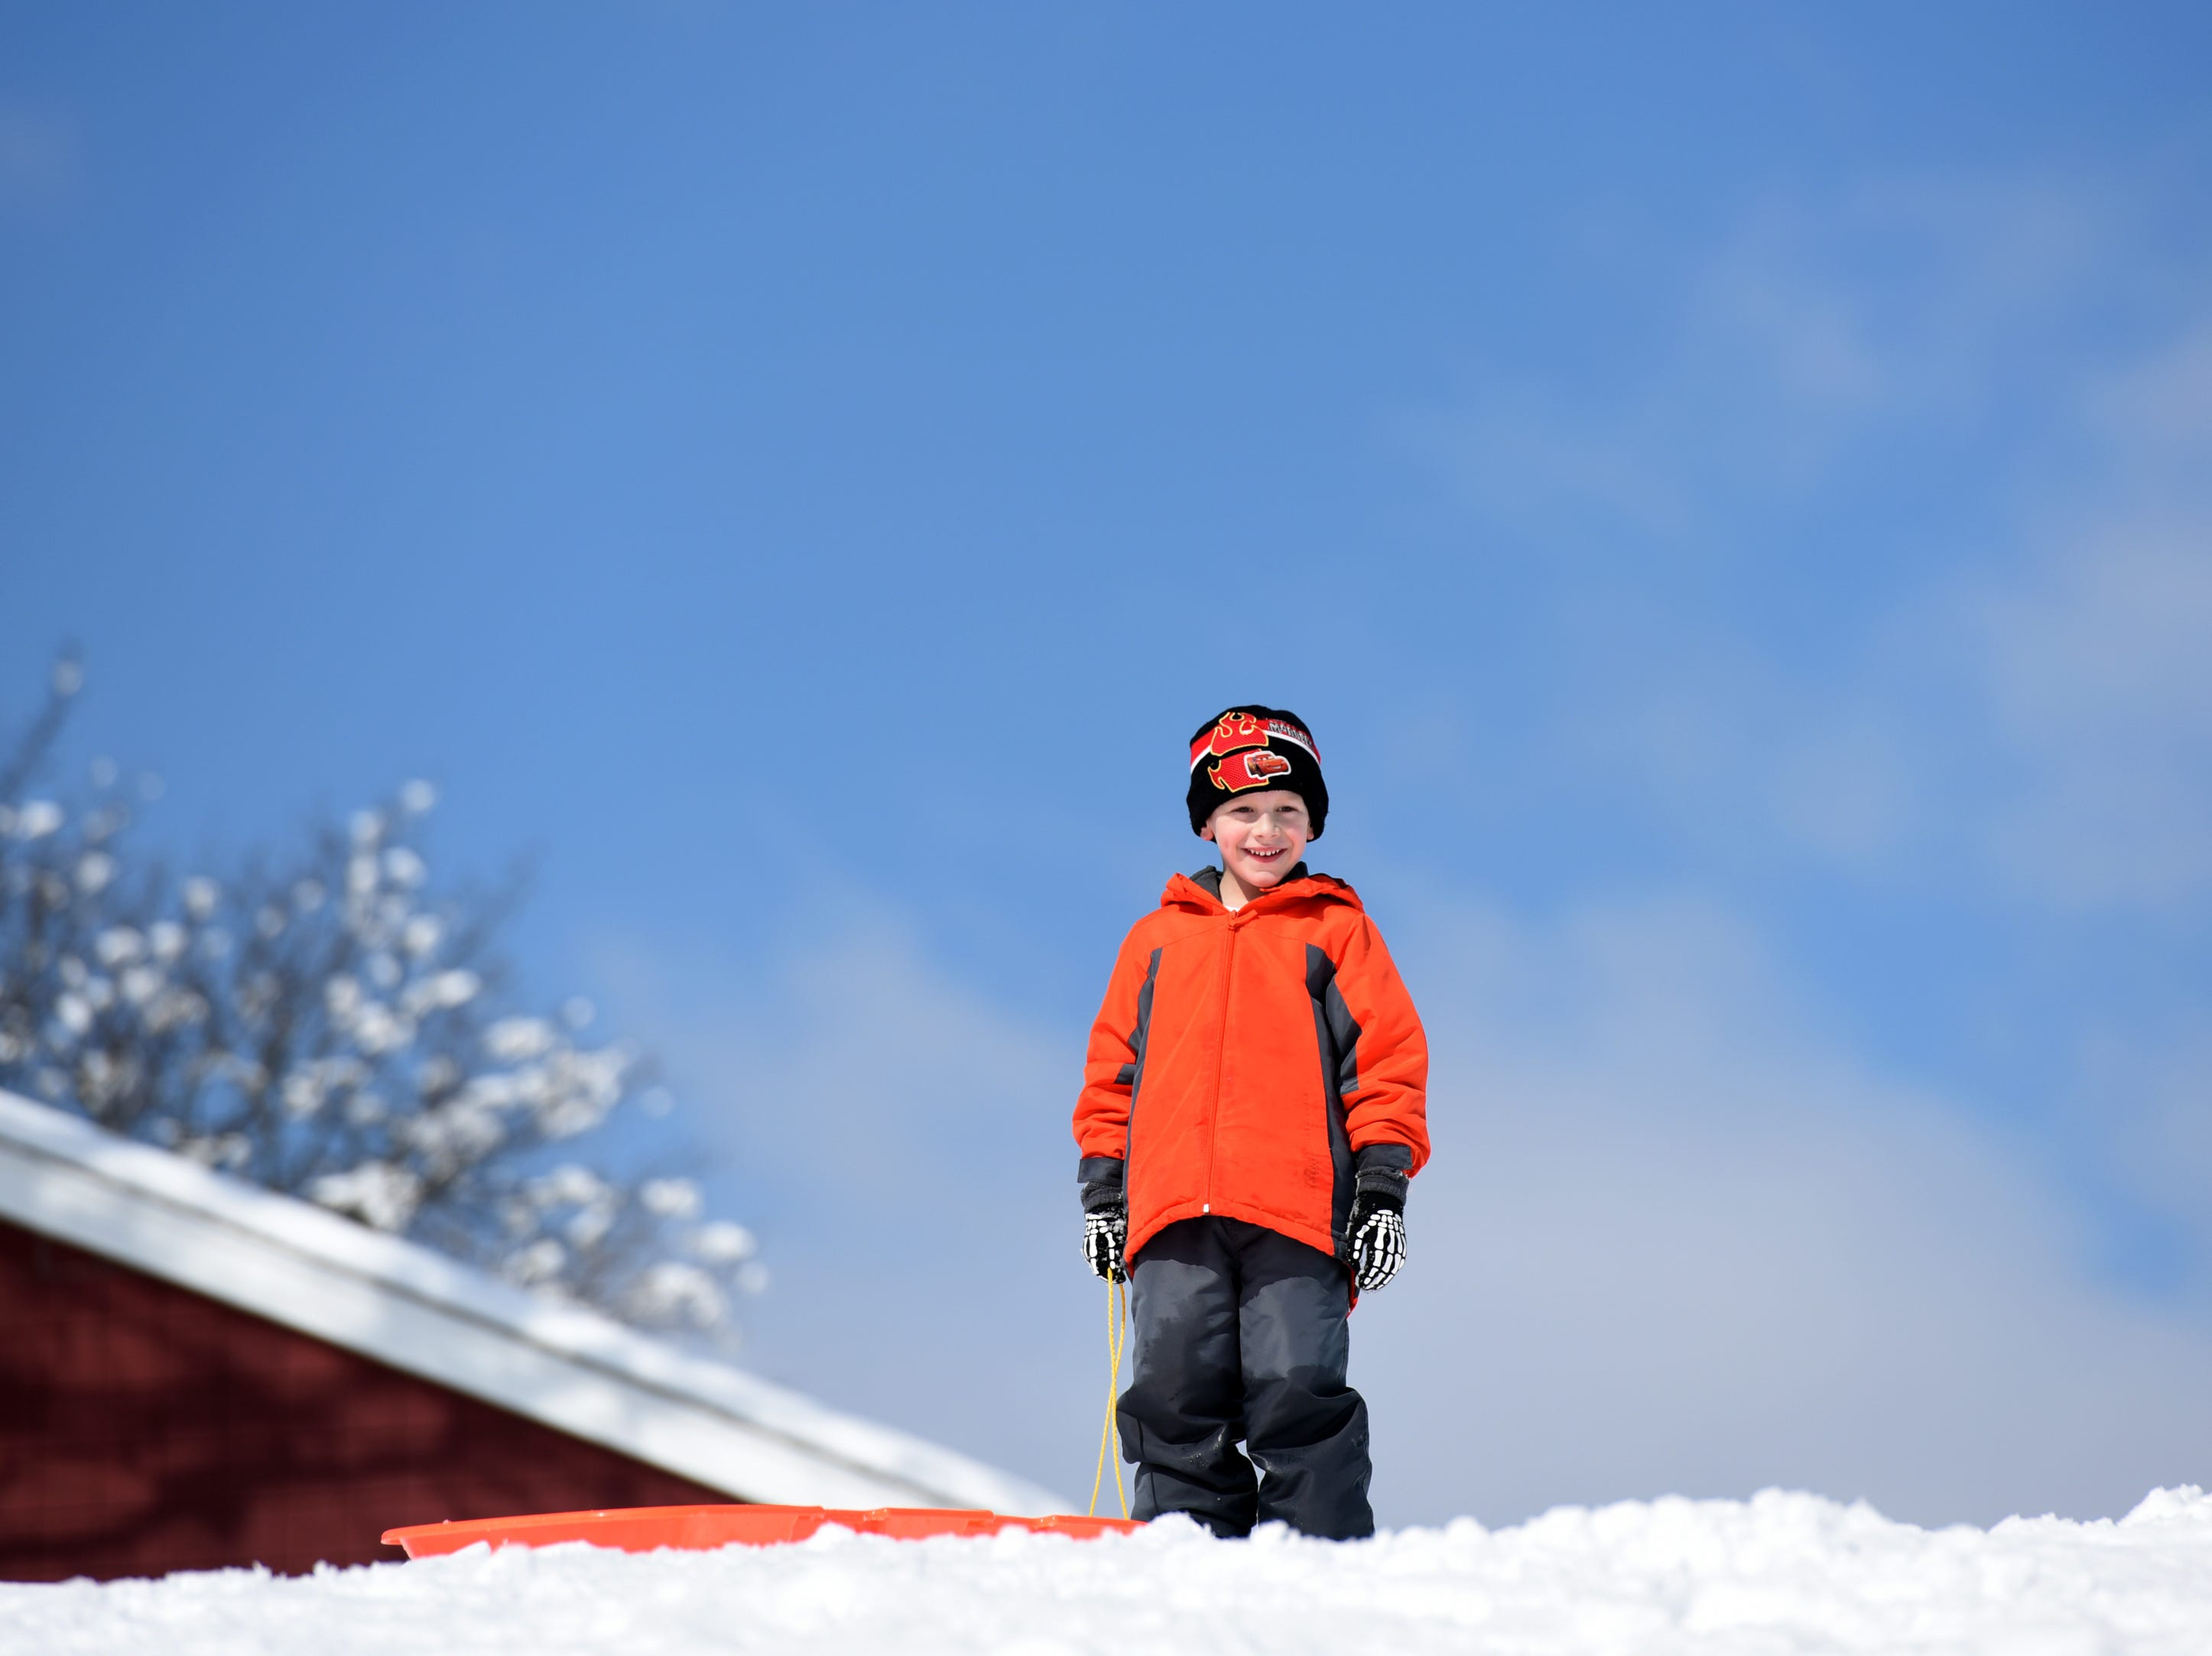 Eric Gibson, 5 takes in the view from atop the sledding hill at Mt. Prospect Park in Clifton on Monday, March 4, 2019.